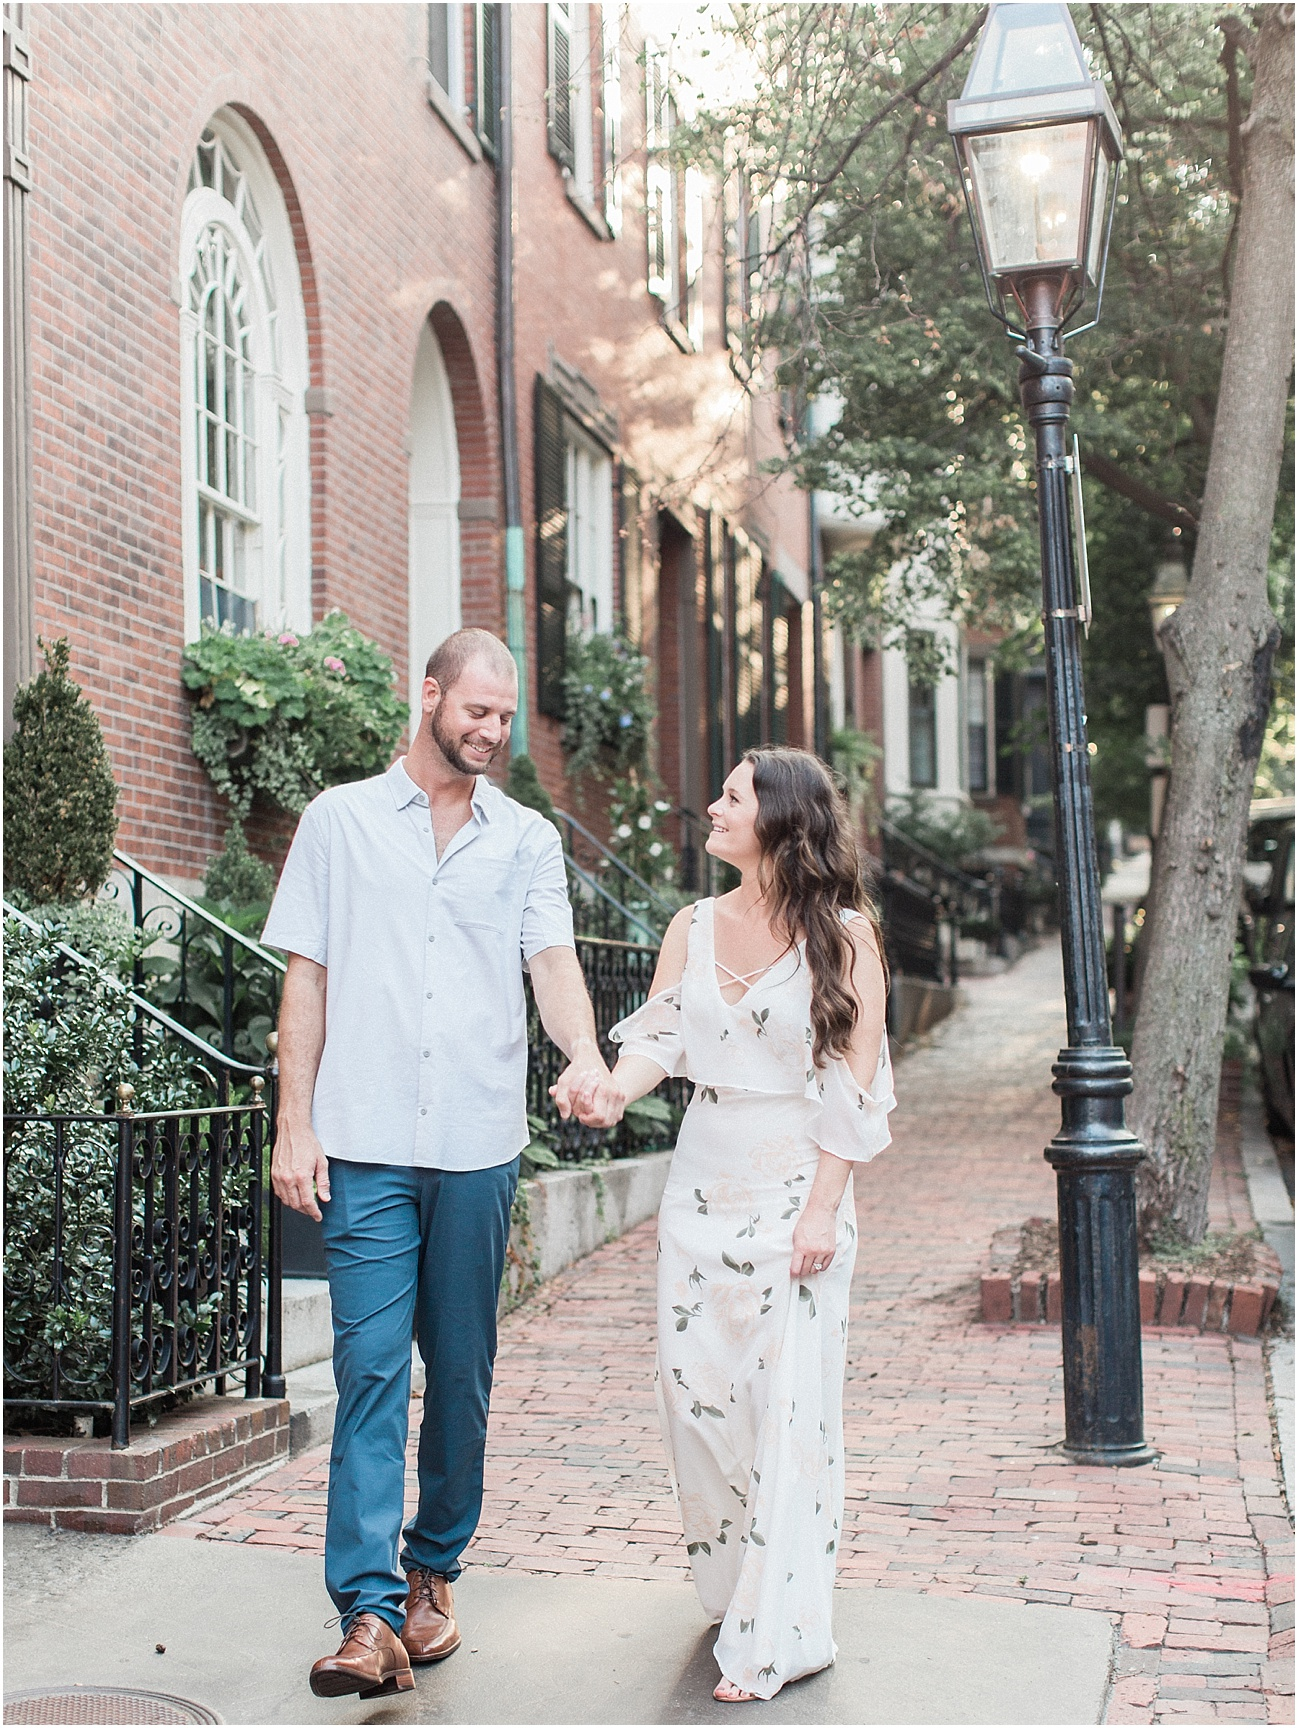 christina_frank_common_engagement_acorn_street_back_bay_cape_cod_boston_wedding_photographer_meredith_jane_photography_photo_0725.jpg